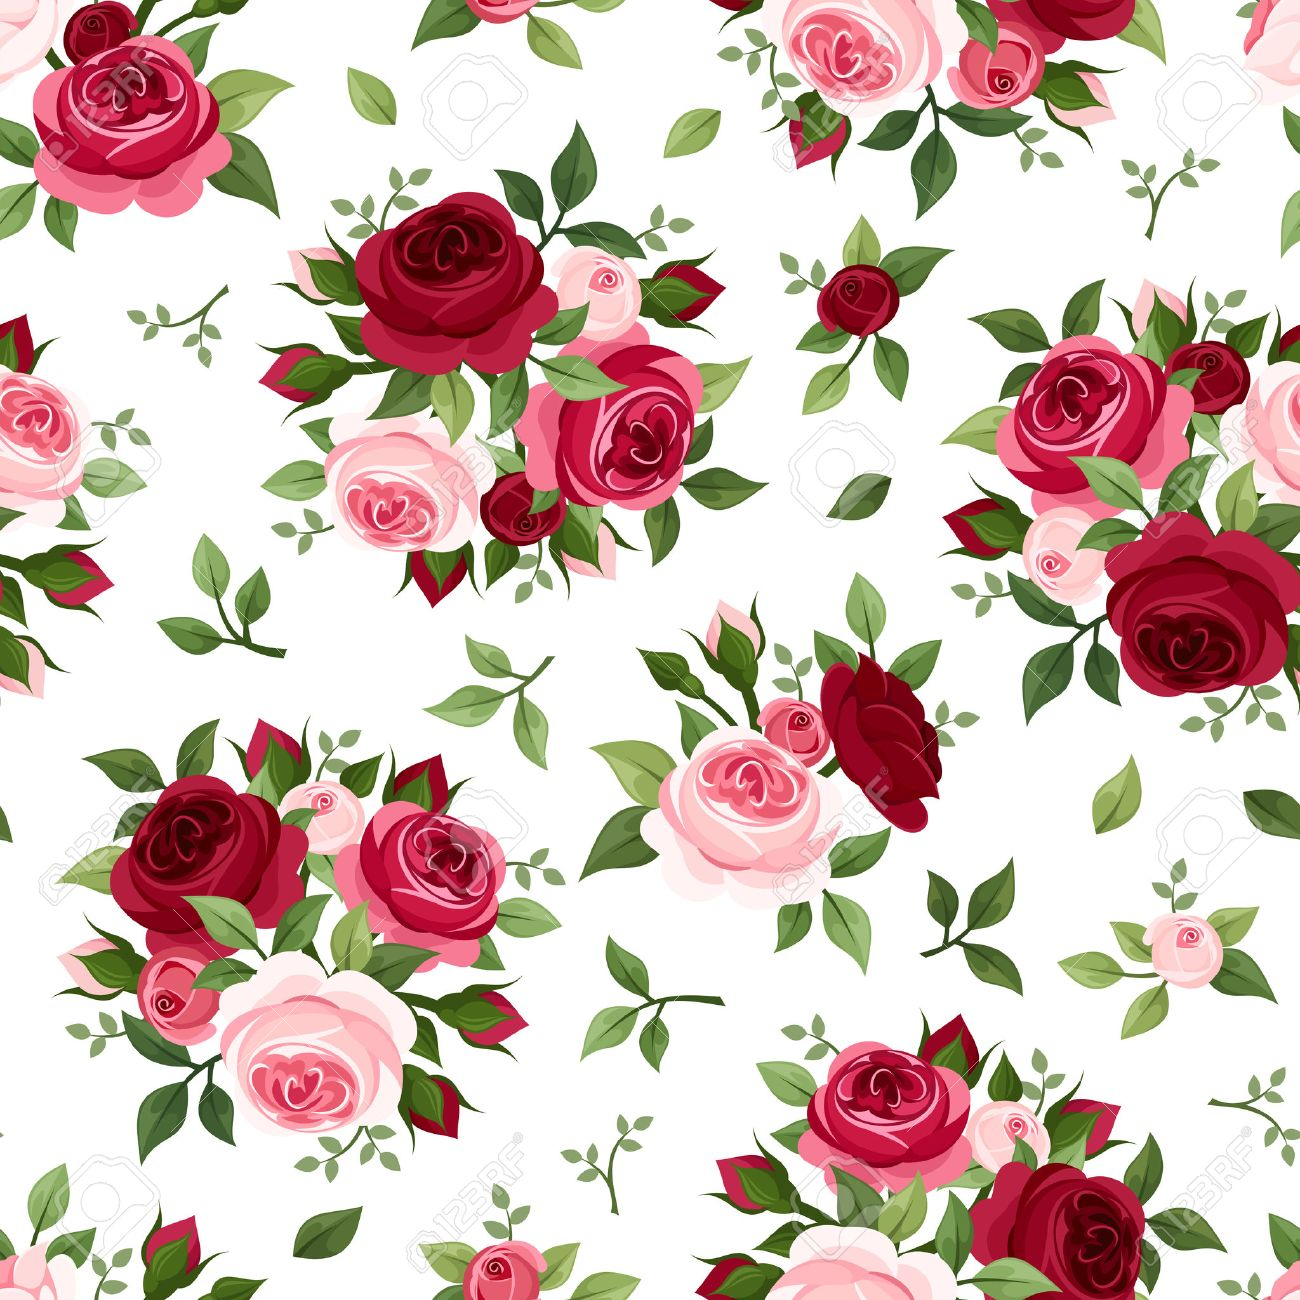 Seamless pattern with red and pink roses  Vector illustration Stock Vector - 25327584